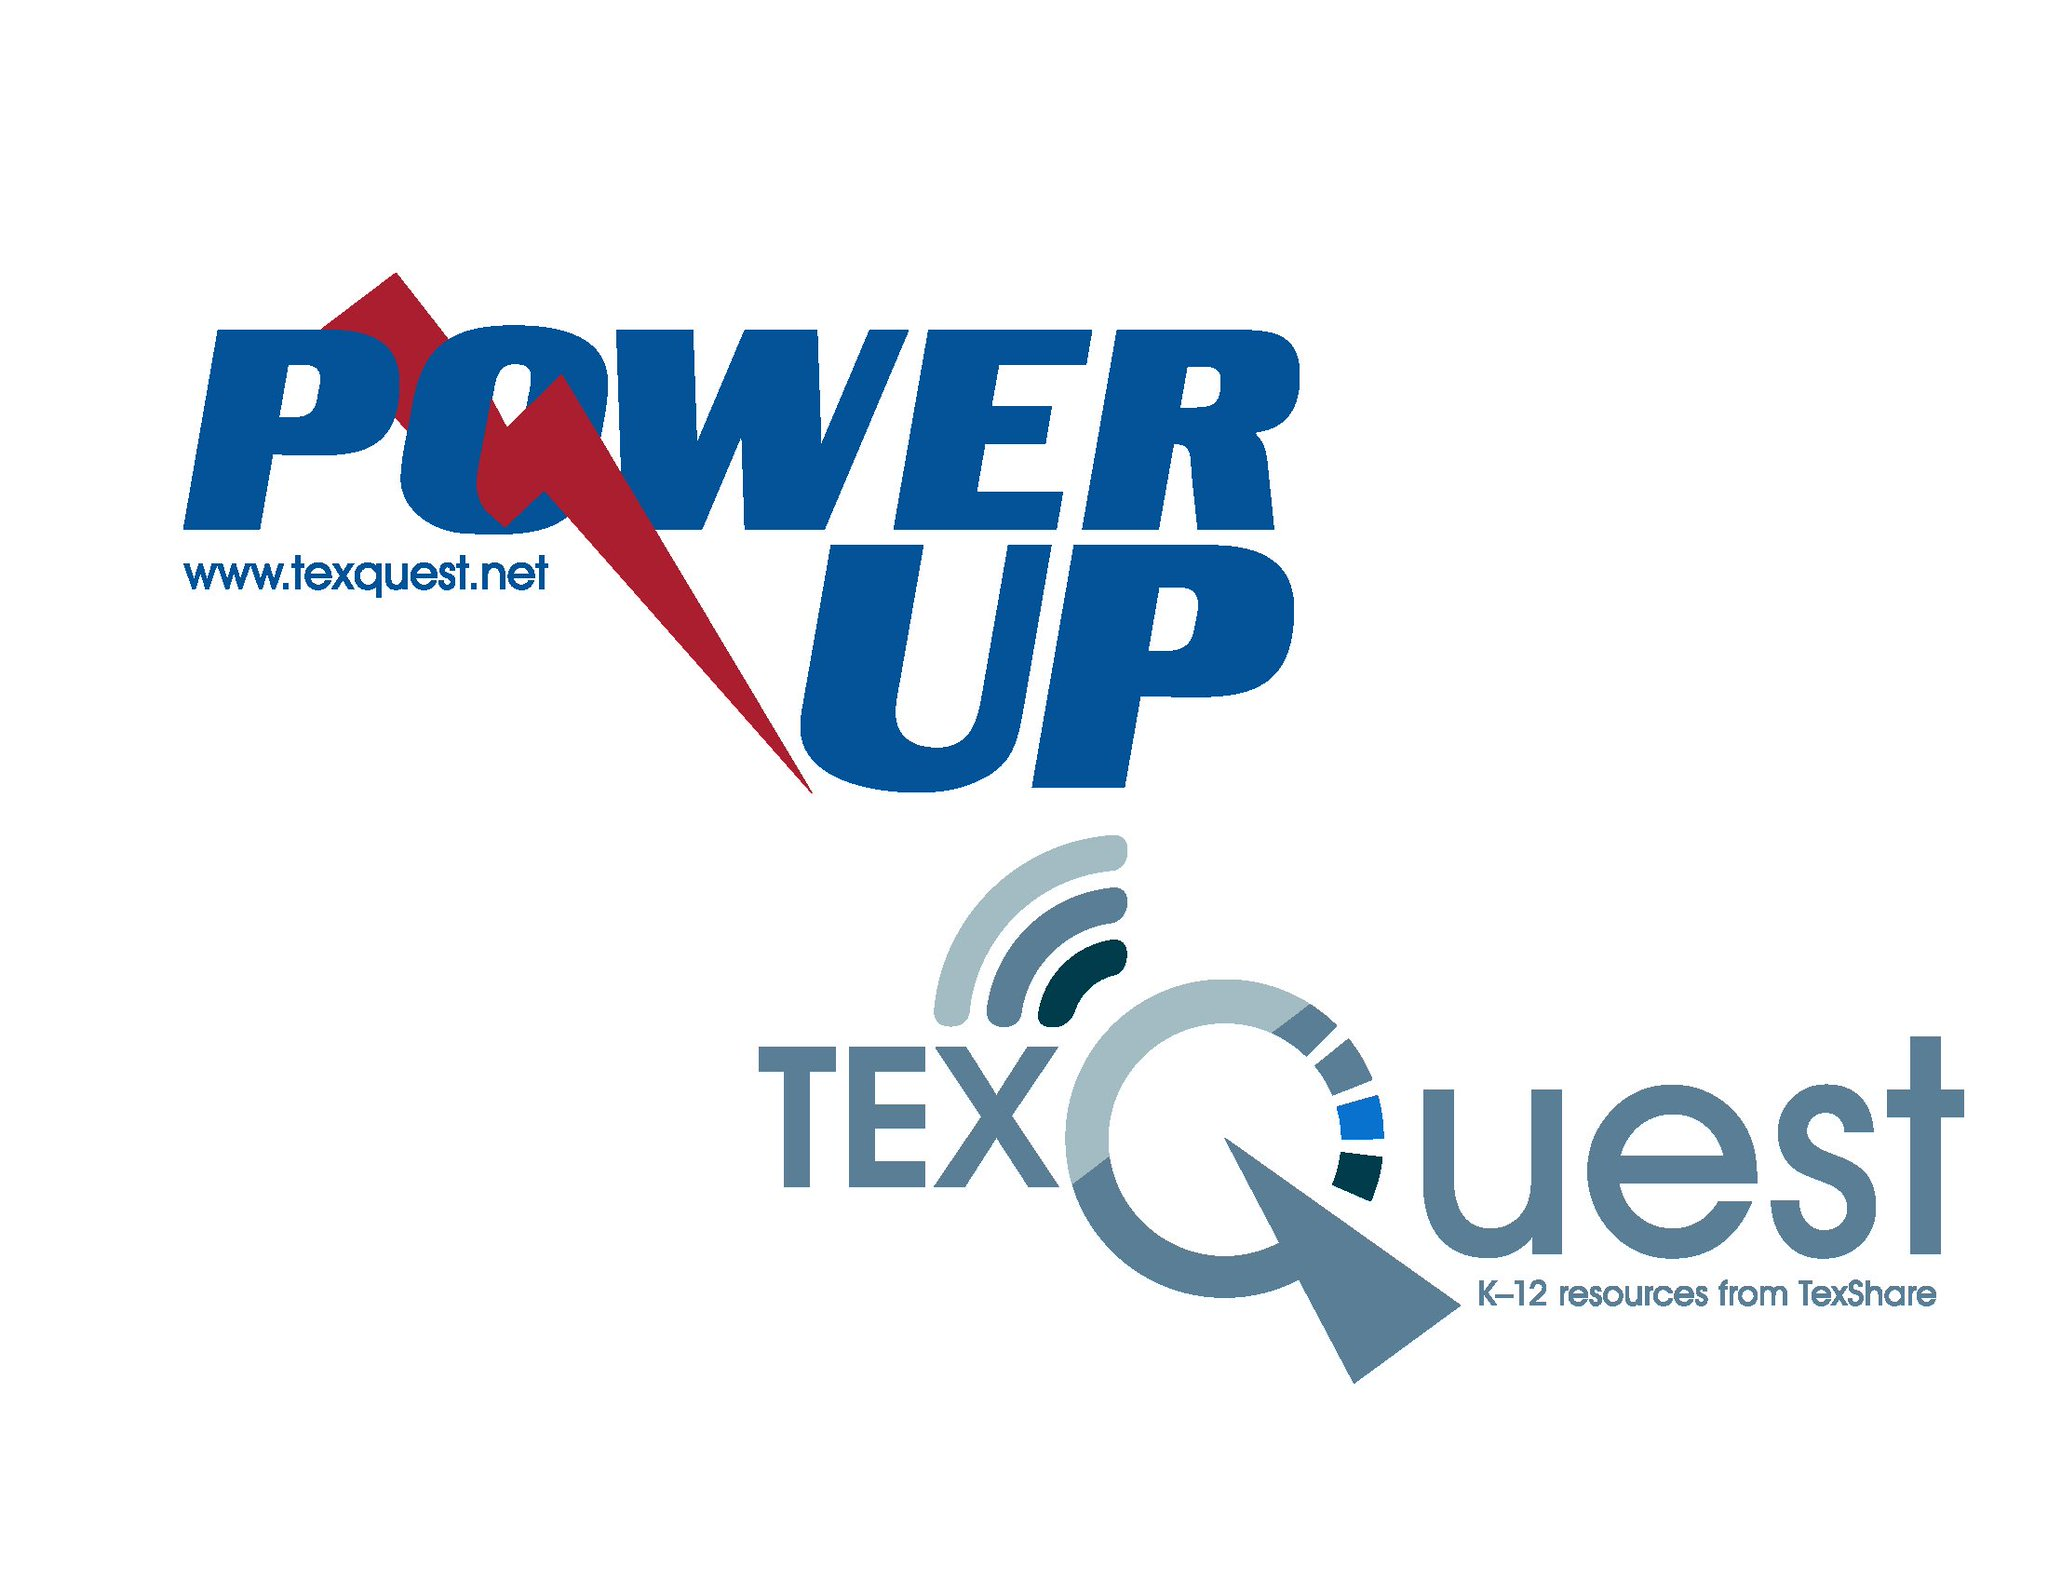 Looking forward to #txlchat tonight at 8:00 CST. #texquest https://t.co/kMcaSZSsLr https://t.co/7gcGBYA9Pb